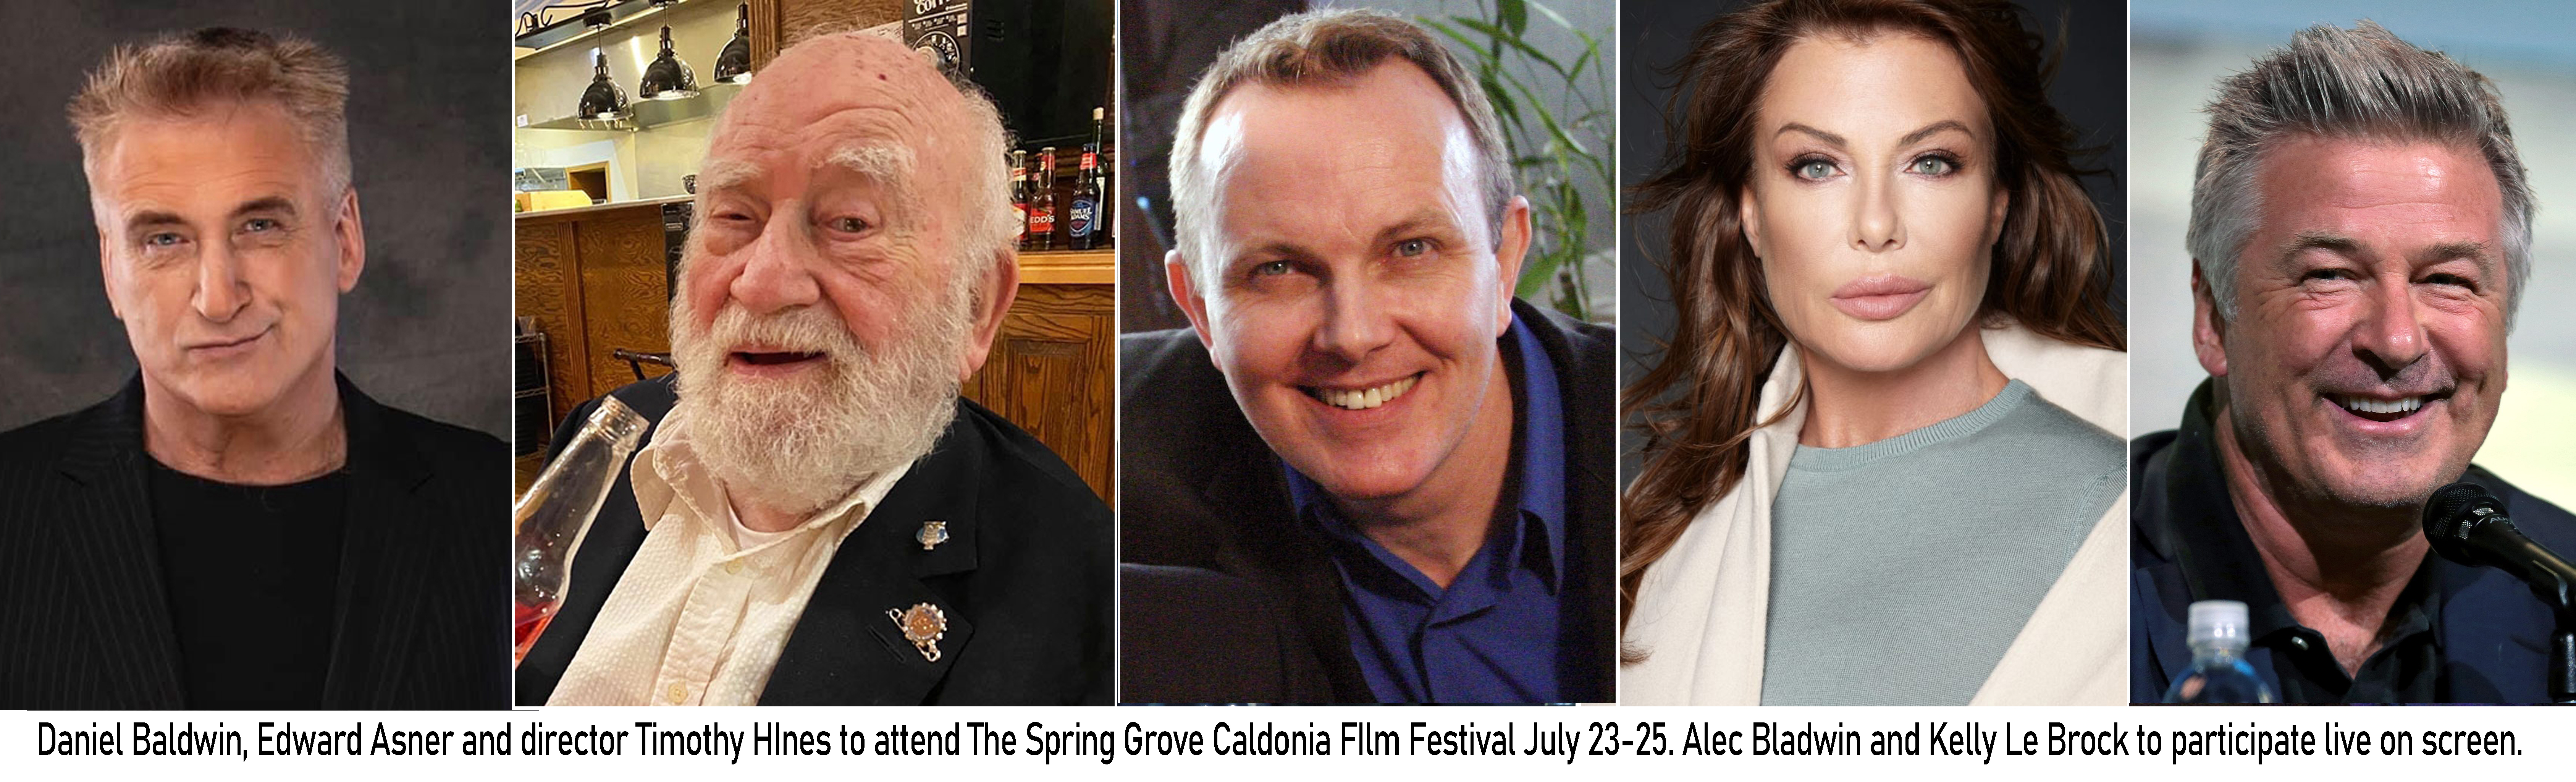 Daniel Baldwin, Ed Asner and Timothy Hines to Attend Spring-Grove Caledonia Film Festival, Alec Baldwin, Kelly Le Brock to Join Live on Screen